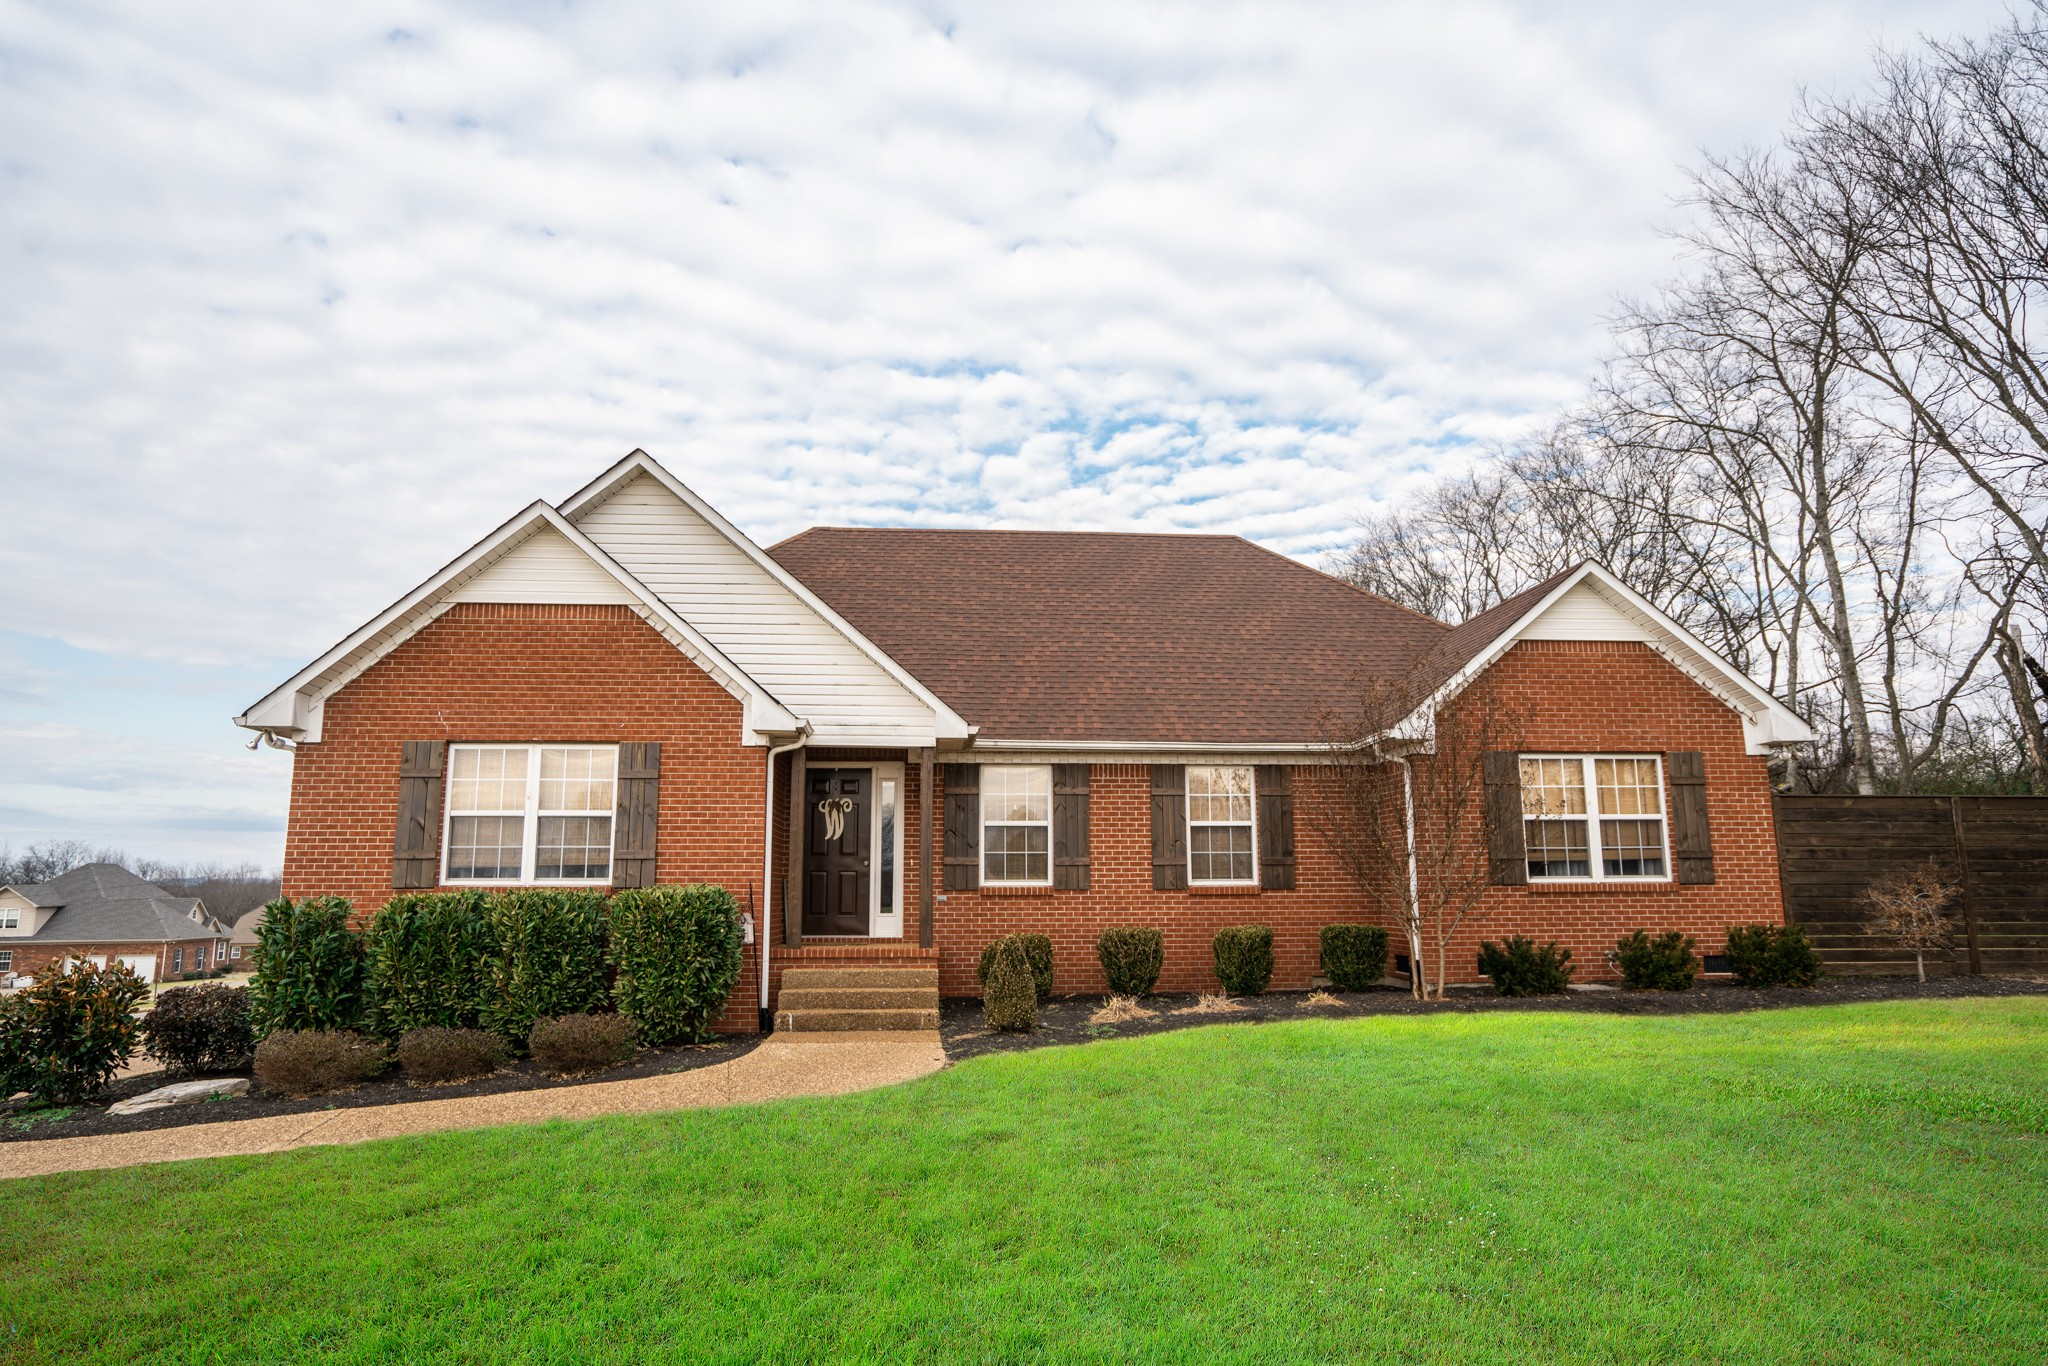 3065 Greens Mill Rd, Spring Hill, Tennessee